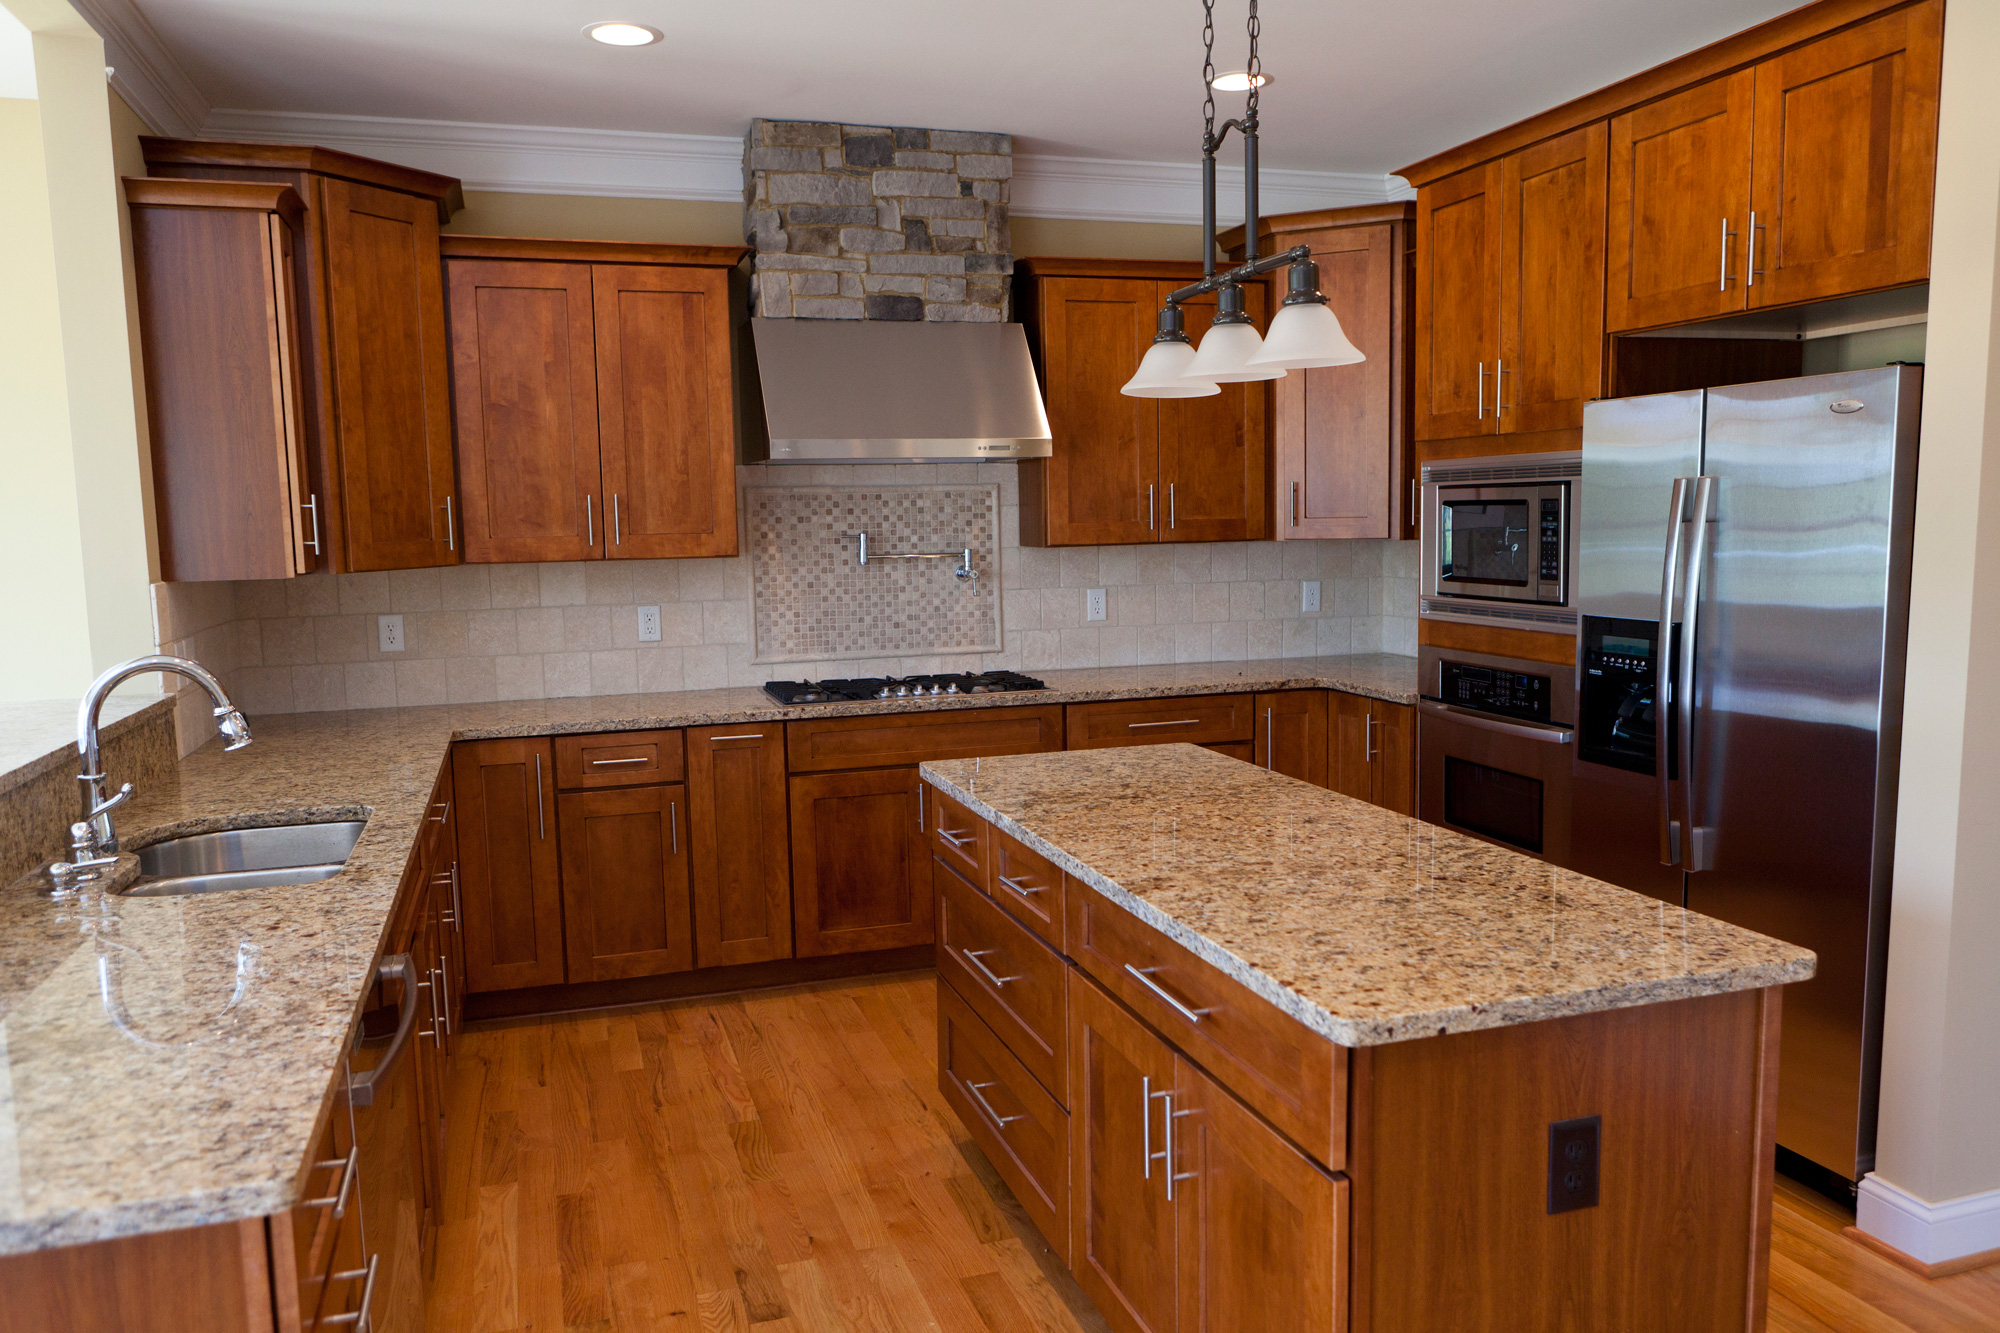 East palo alto contractor and home remodel company for Kitchen remodel